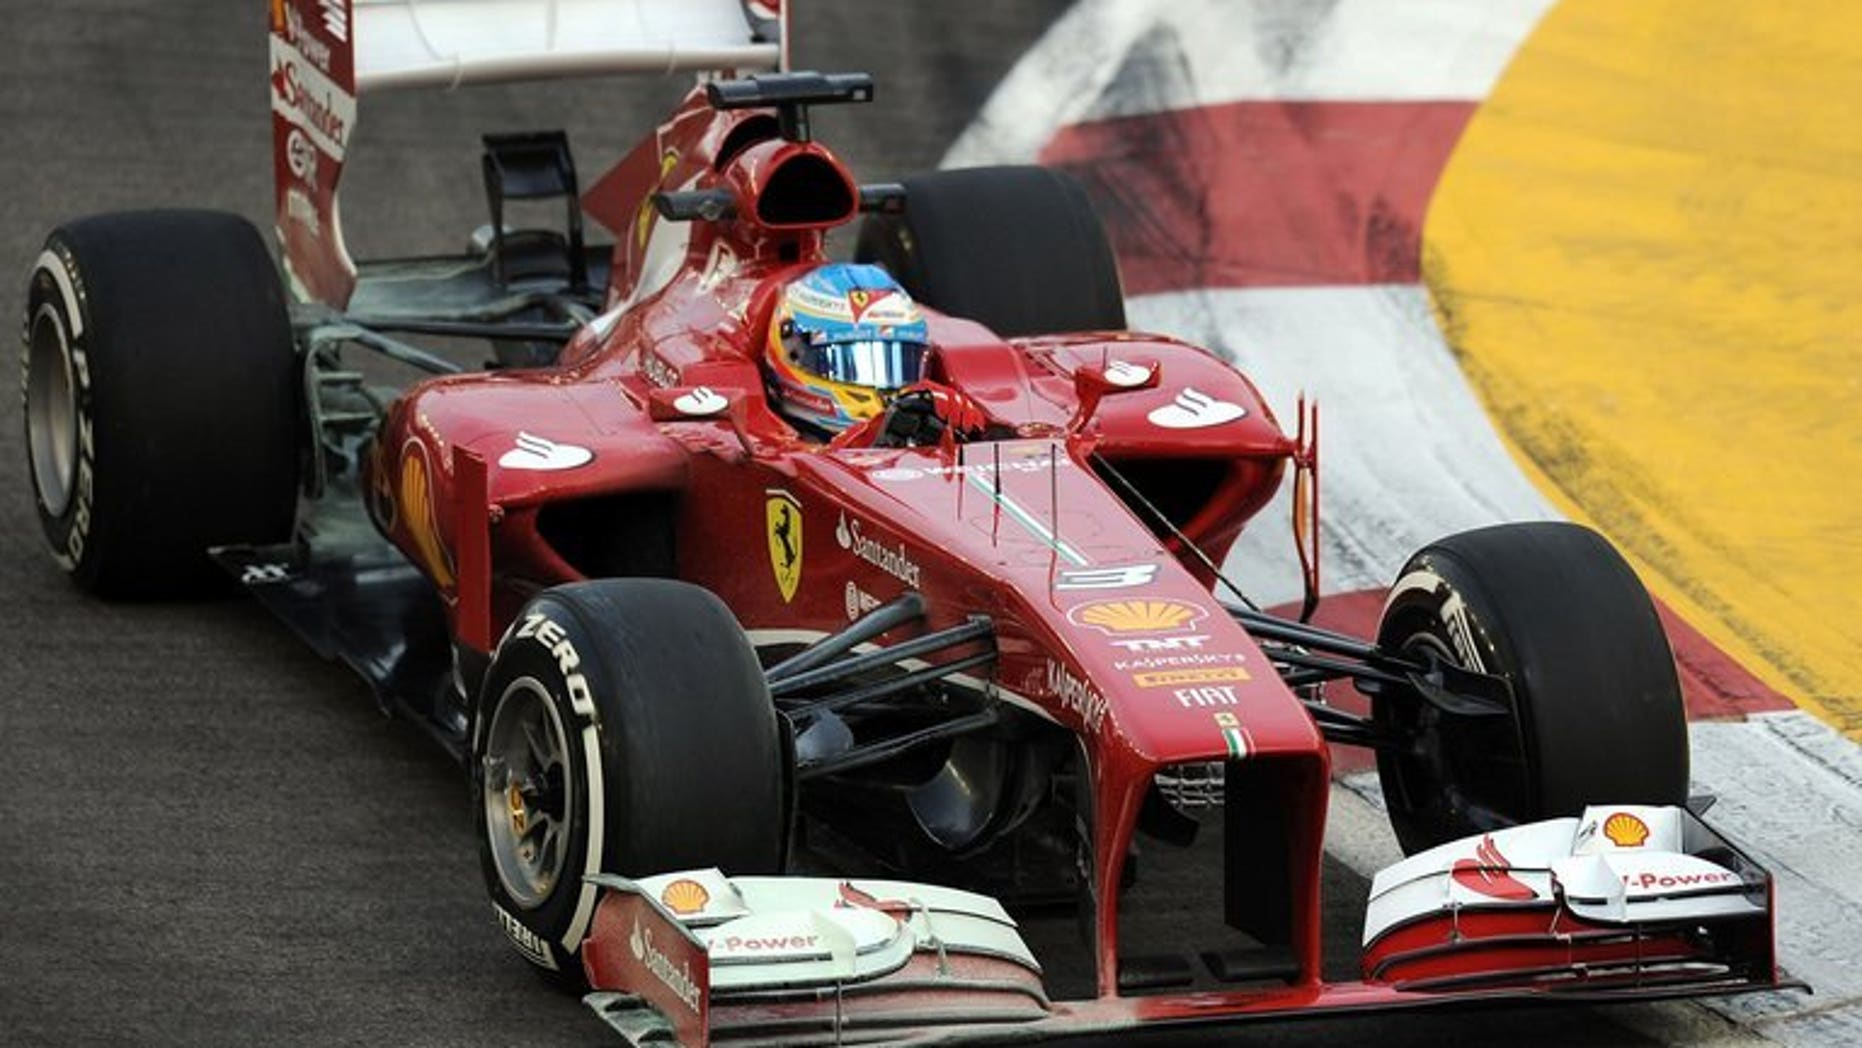 Fernando Alonso drives in the first practice session on September 20, 2013 for the Singapore Grand Prix. McLaren confirmed Friday they are open to the shock return of Ferrari's Fernando Alonso in what would be one of Formula One's most sensational coups.